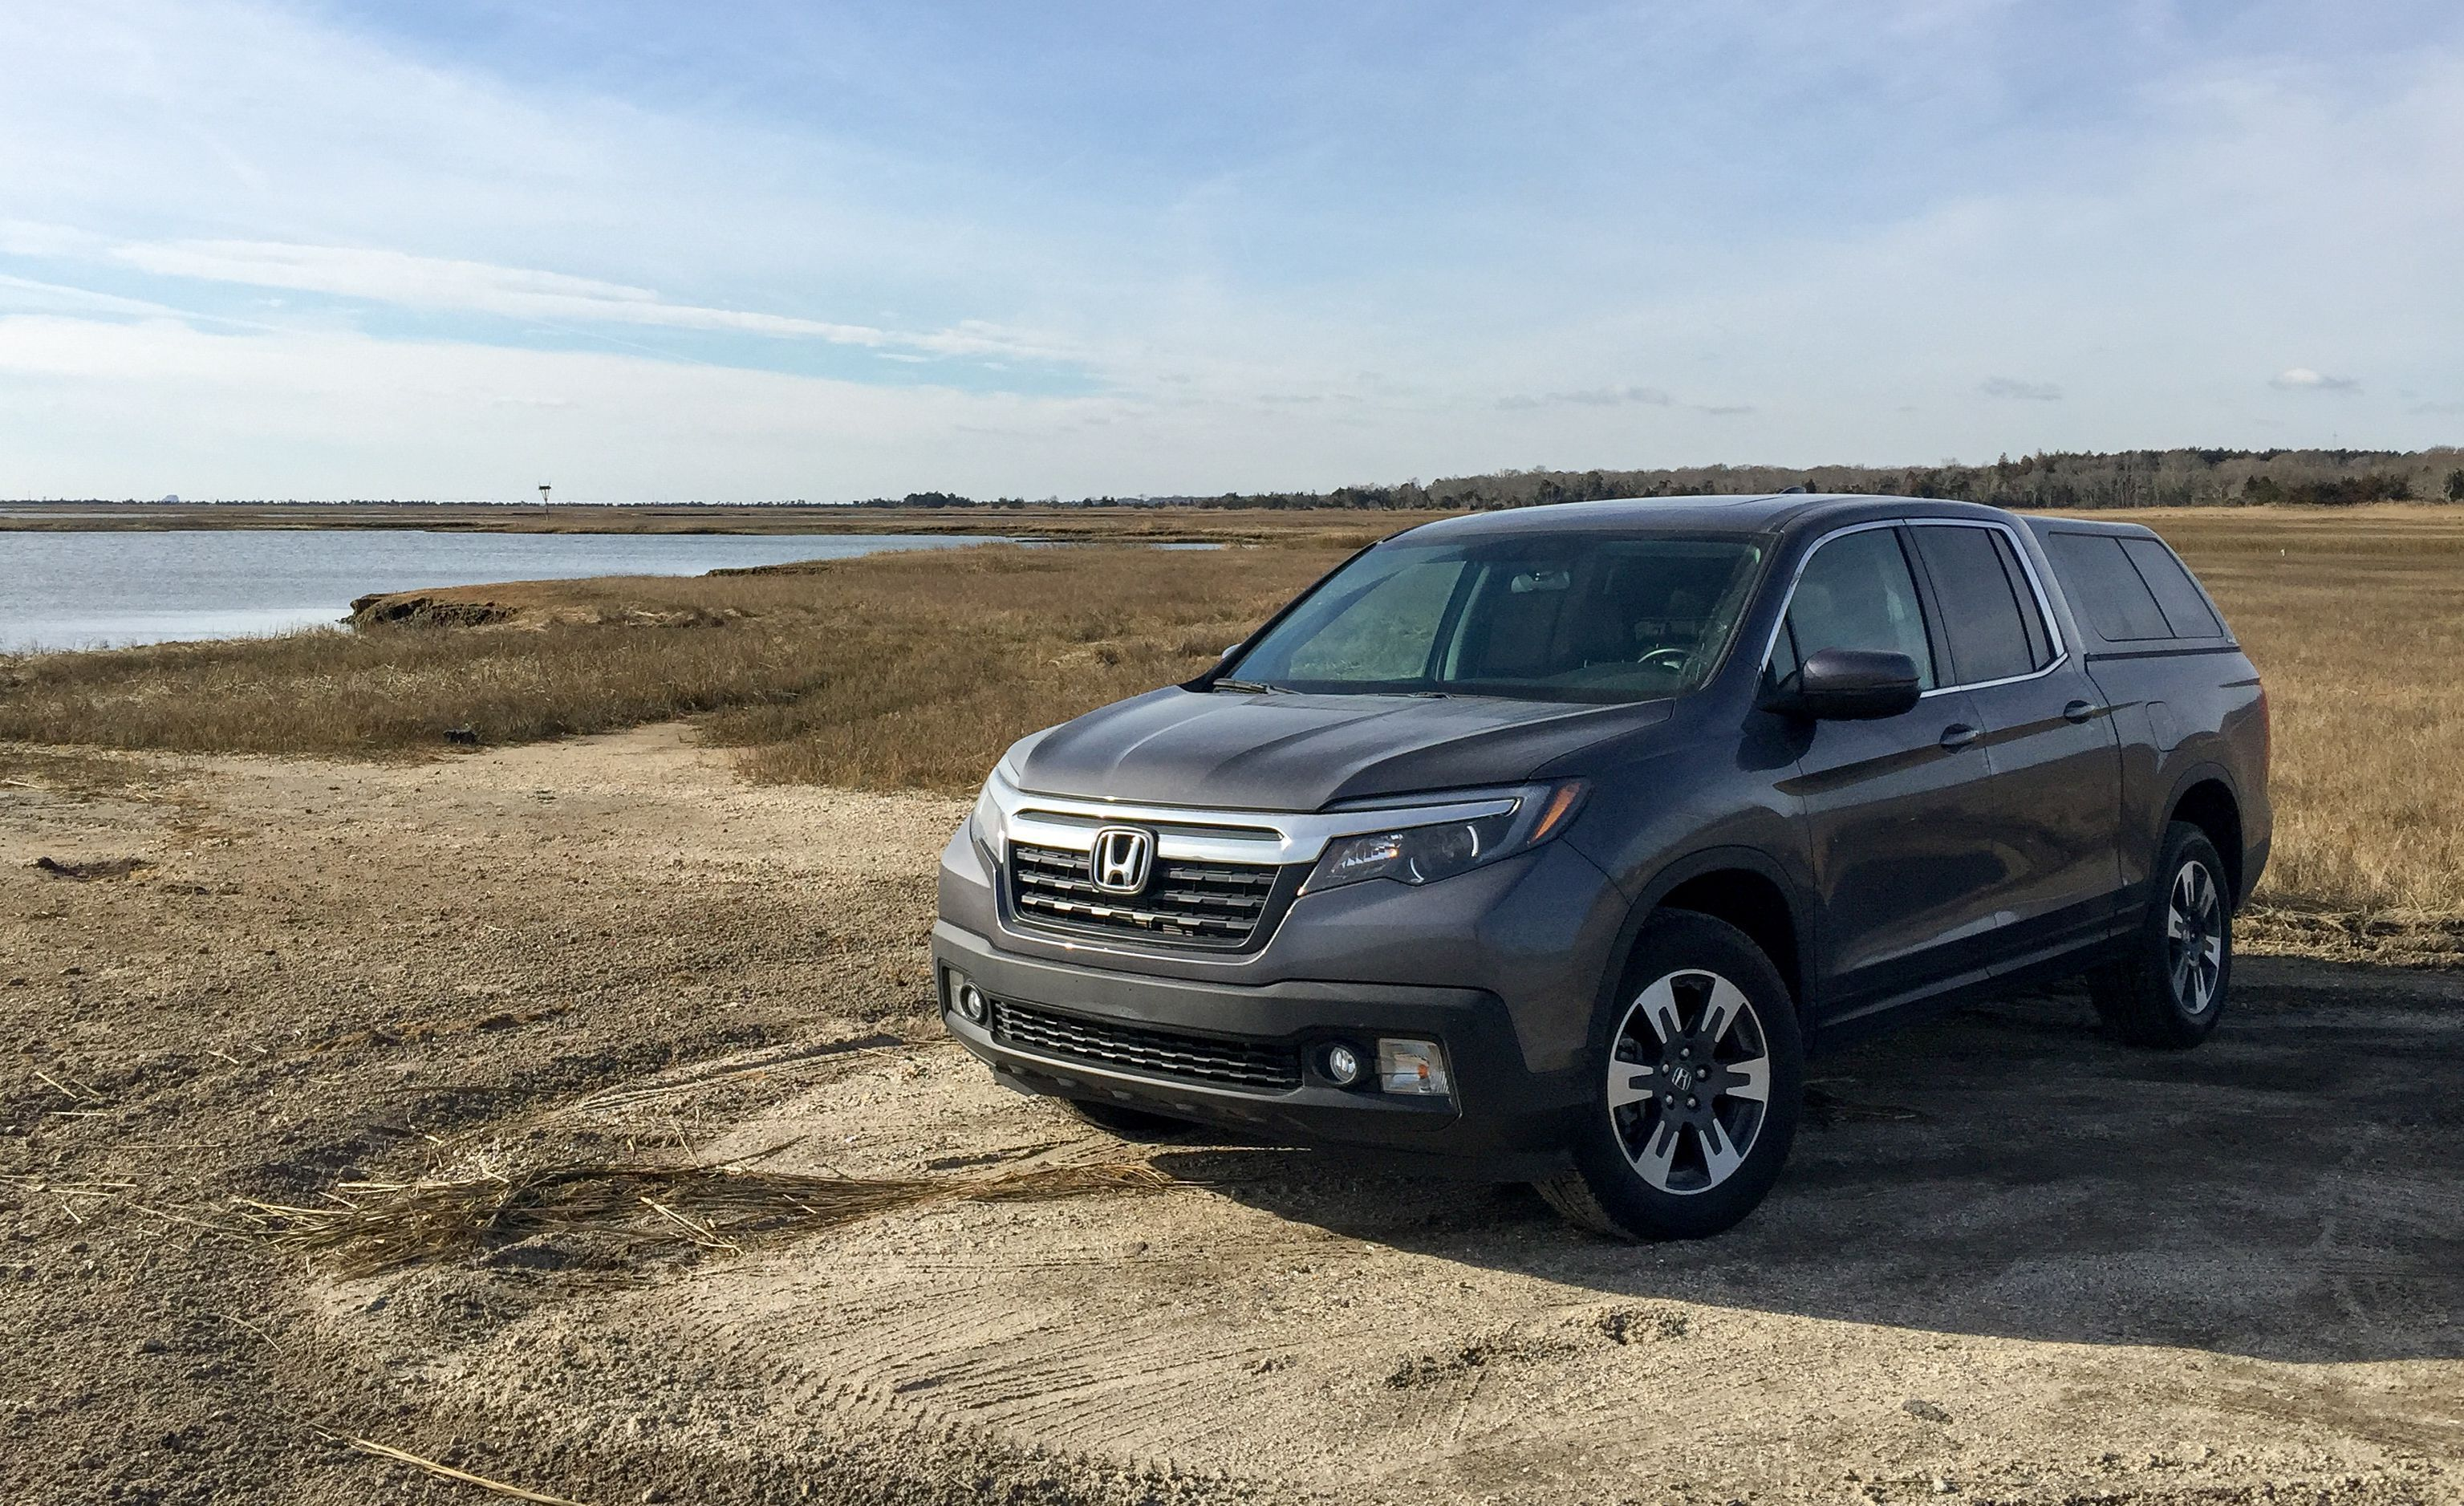 How Reliable Is the 2019 Honda Ridgeline?